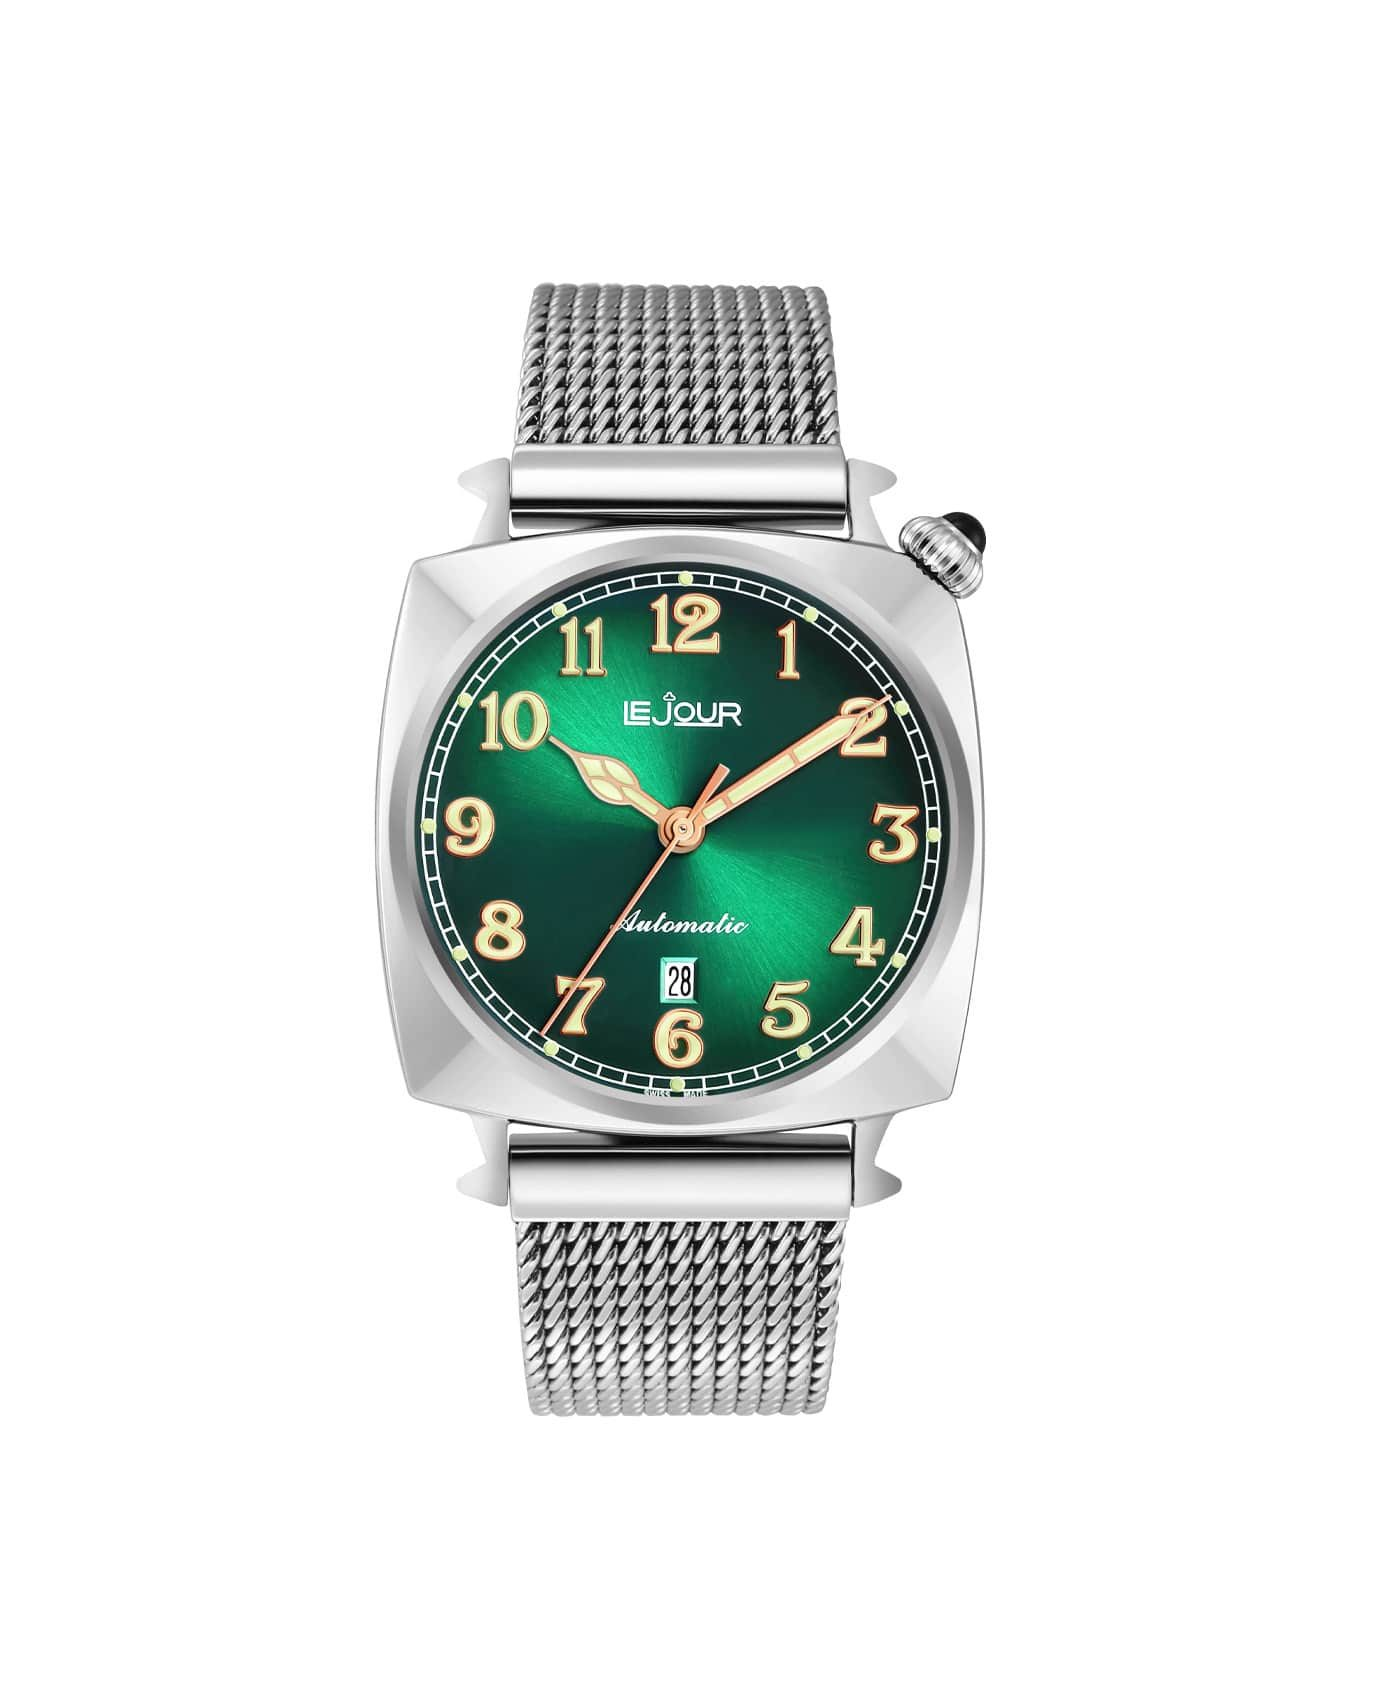 LJ-HR-004 green sunray dial Front